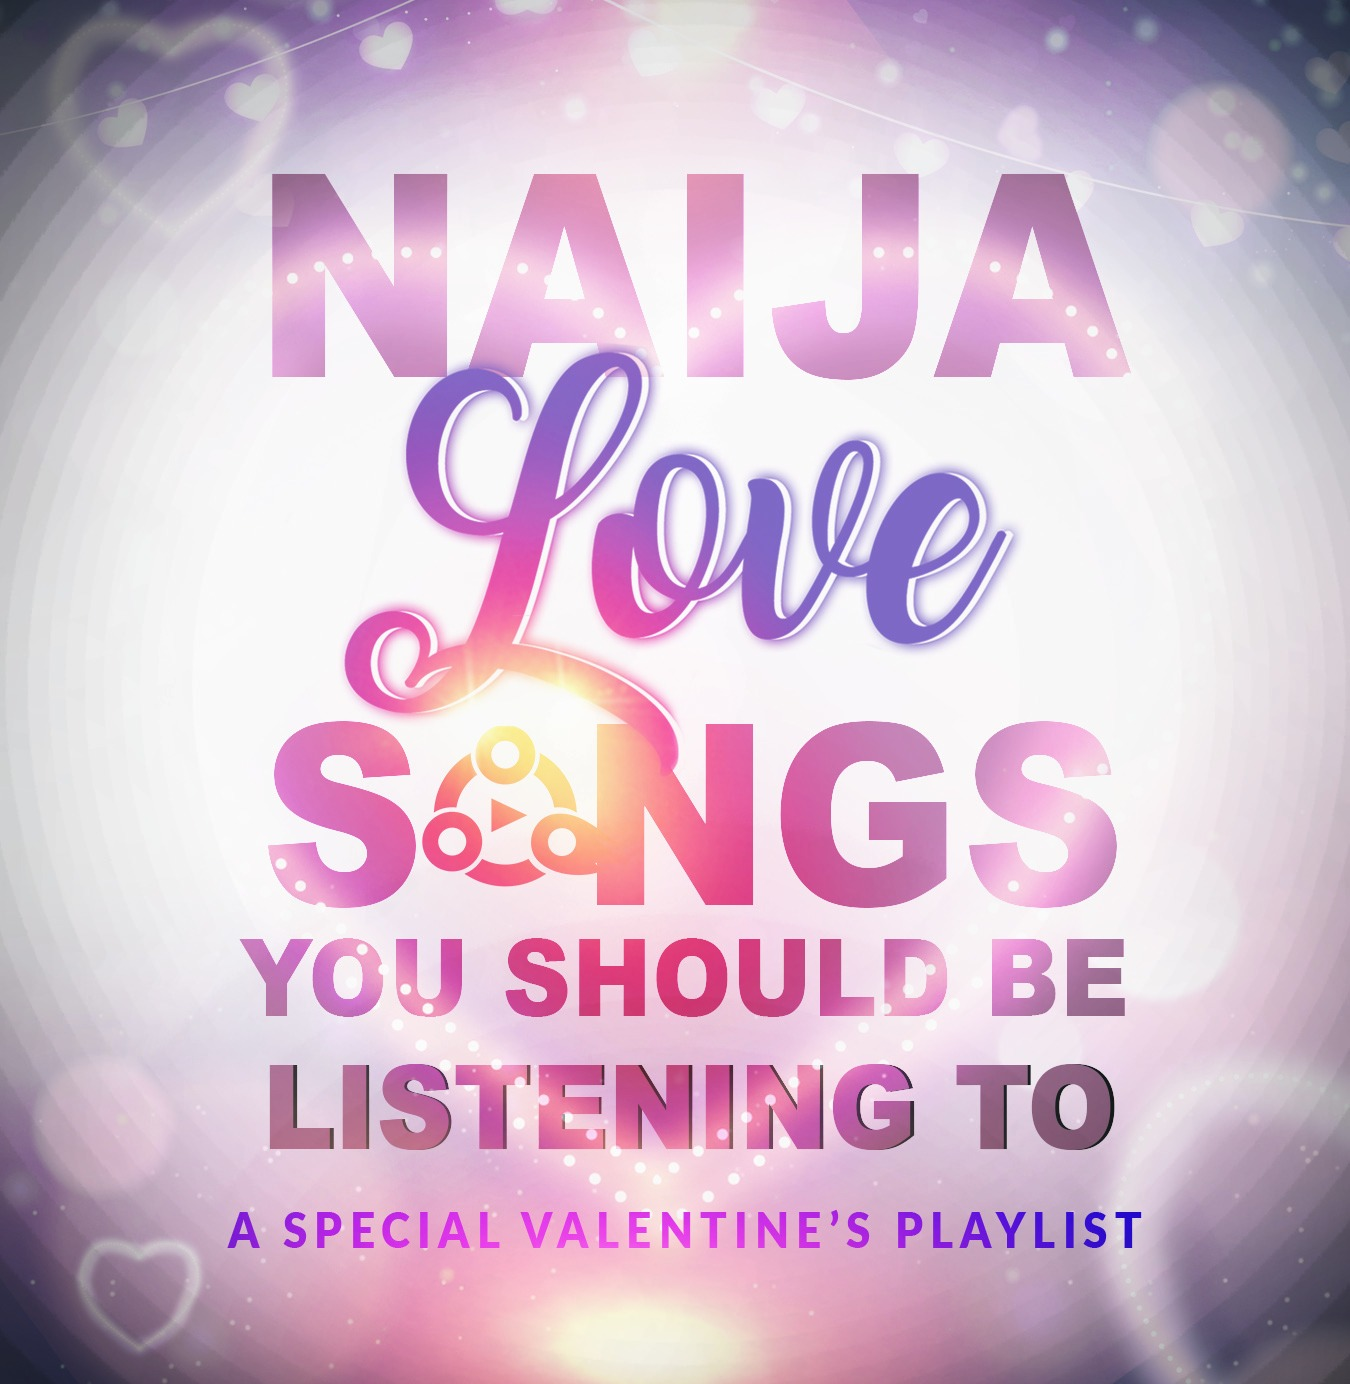 17 Naija Love Songs You Should Be Listening To | A Special